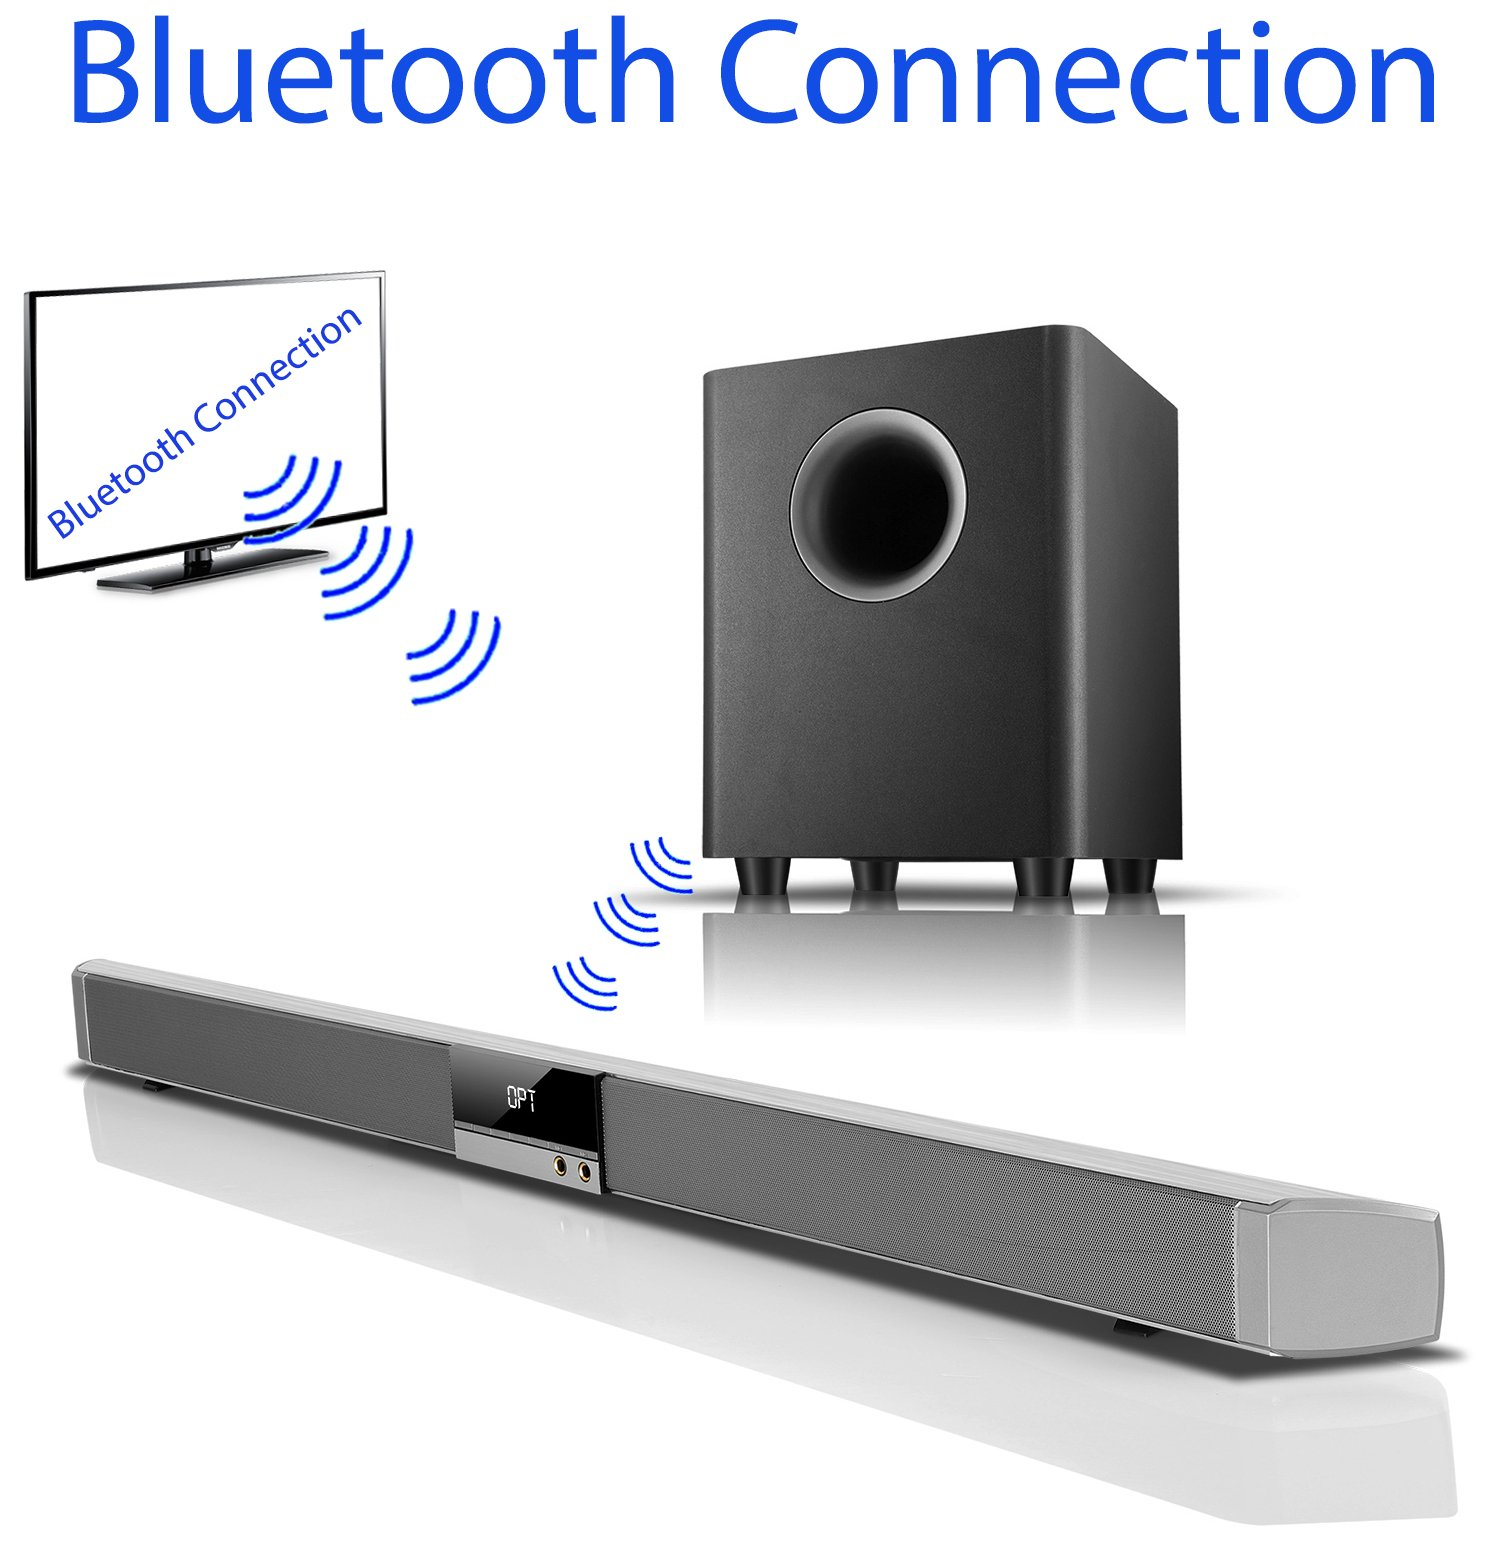 Boytone BT-888 Audio 39 inch 80W Bluetooth Sound Bar with Bluetooth Subwoofer Home Theater System for Streaming TV, Phones Tablets, Automatically Connect Your Subwoofer to the Sound Bar and Source